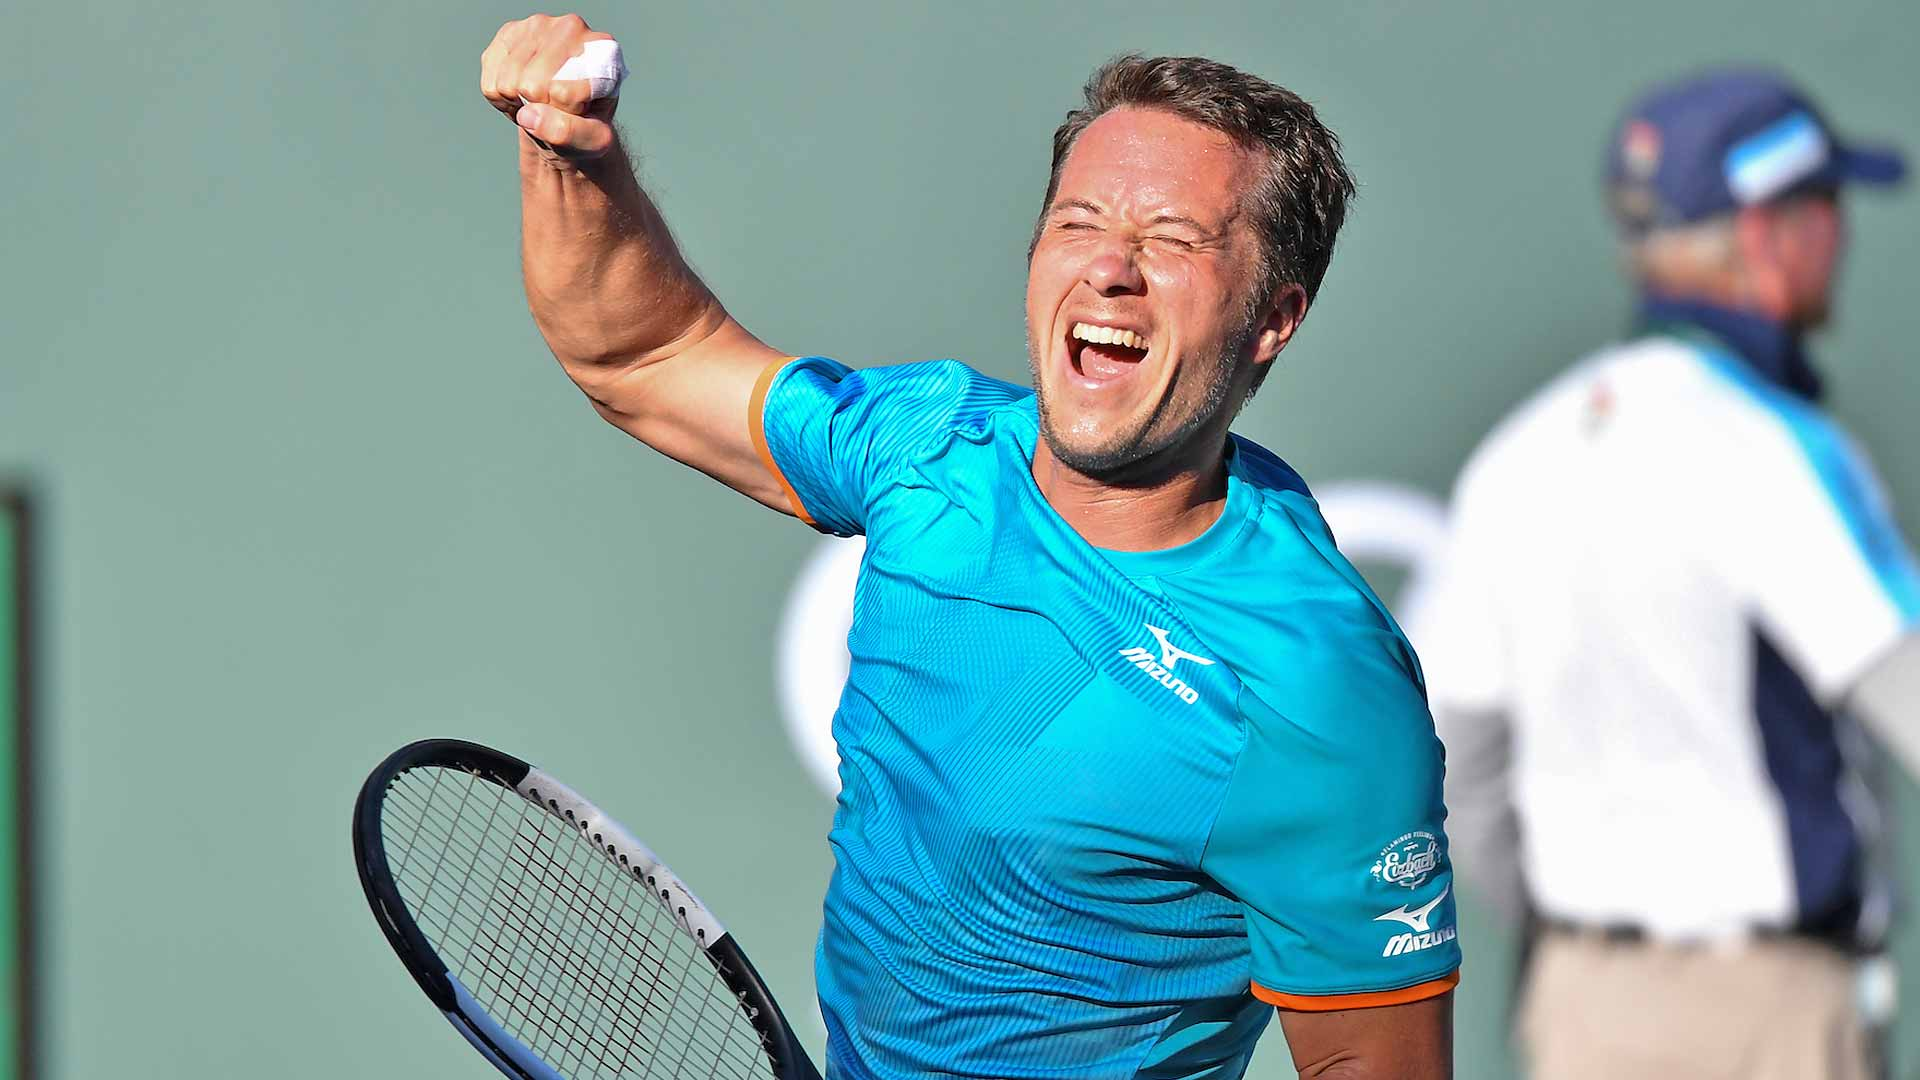 Philipp Kohlschreiber celebrates his win against Novak Djokovic at the 2019 BNP Paribas Open